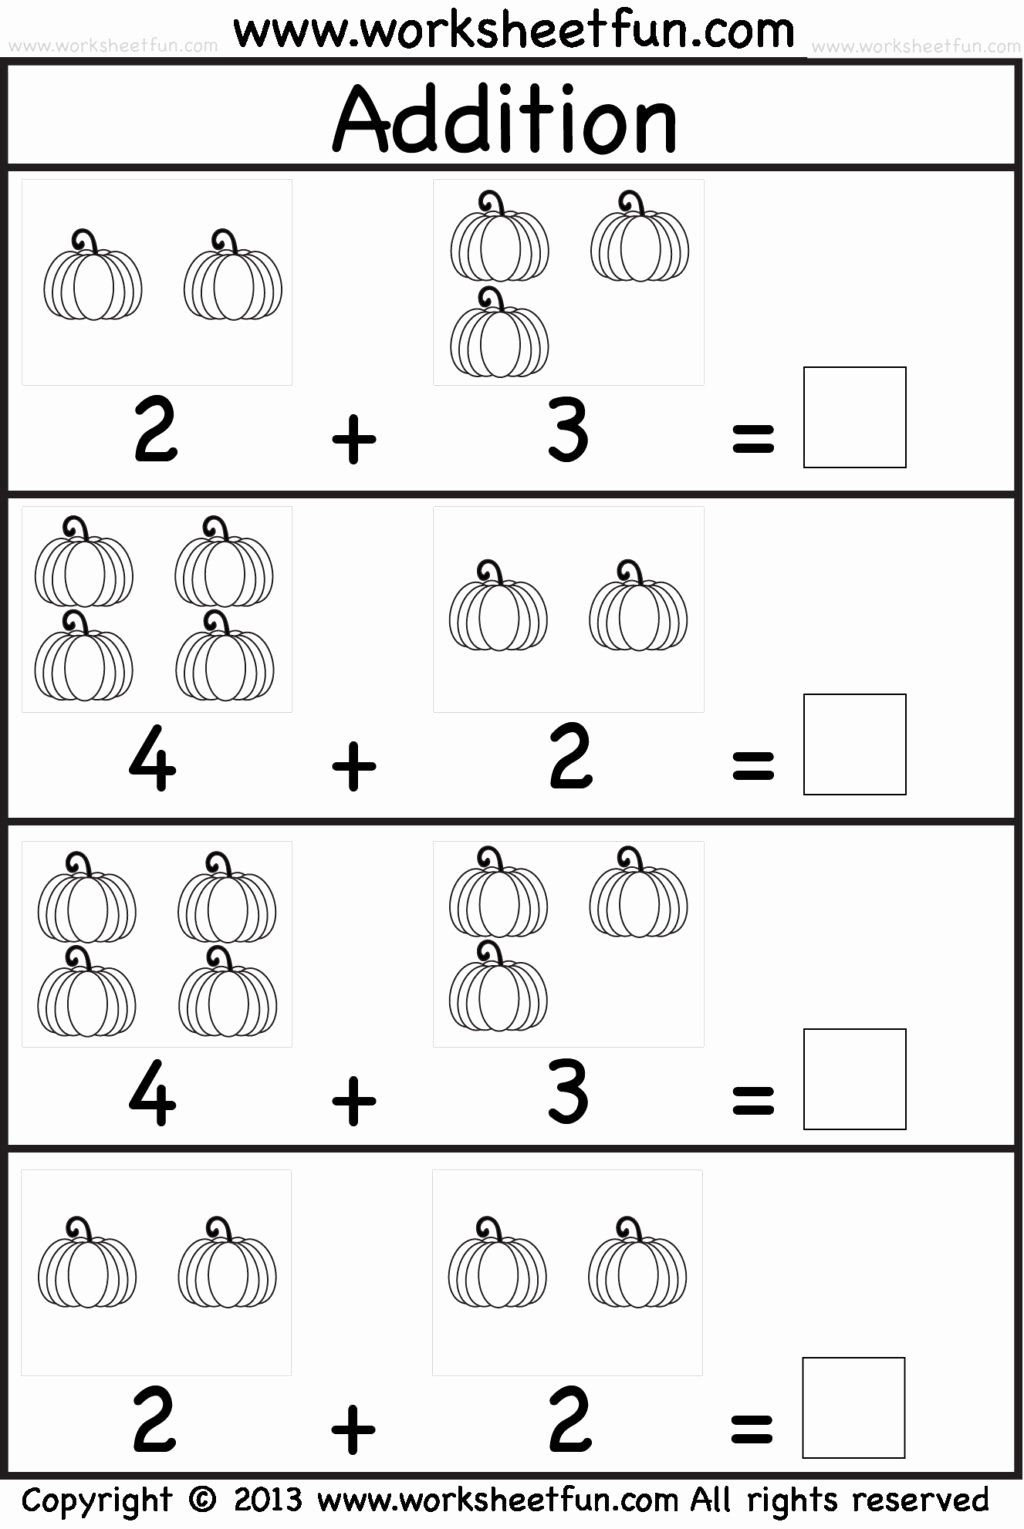 Free Printable Educational Worksheets for Preschoolers Printable Worksheet Math Worksheets Preschool Free Printable